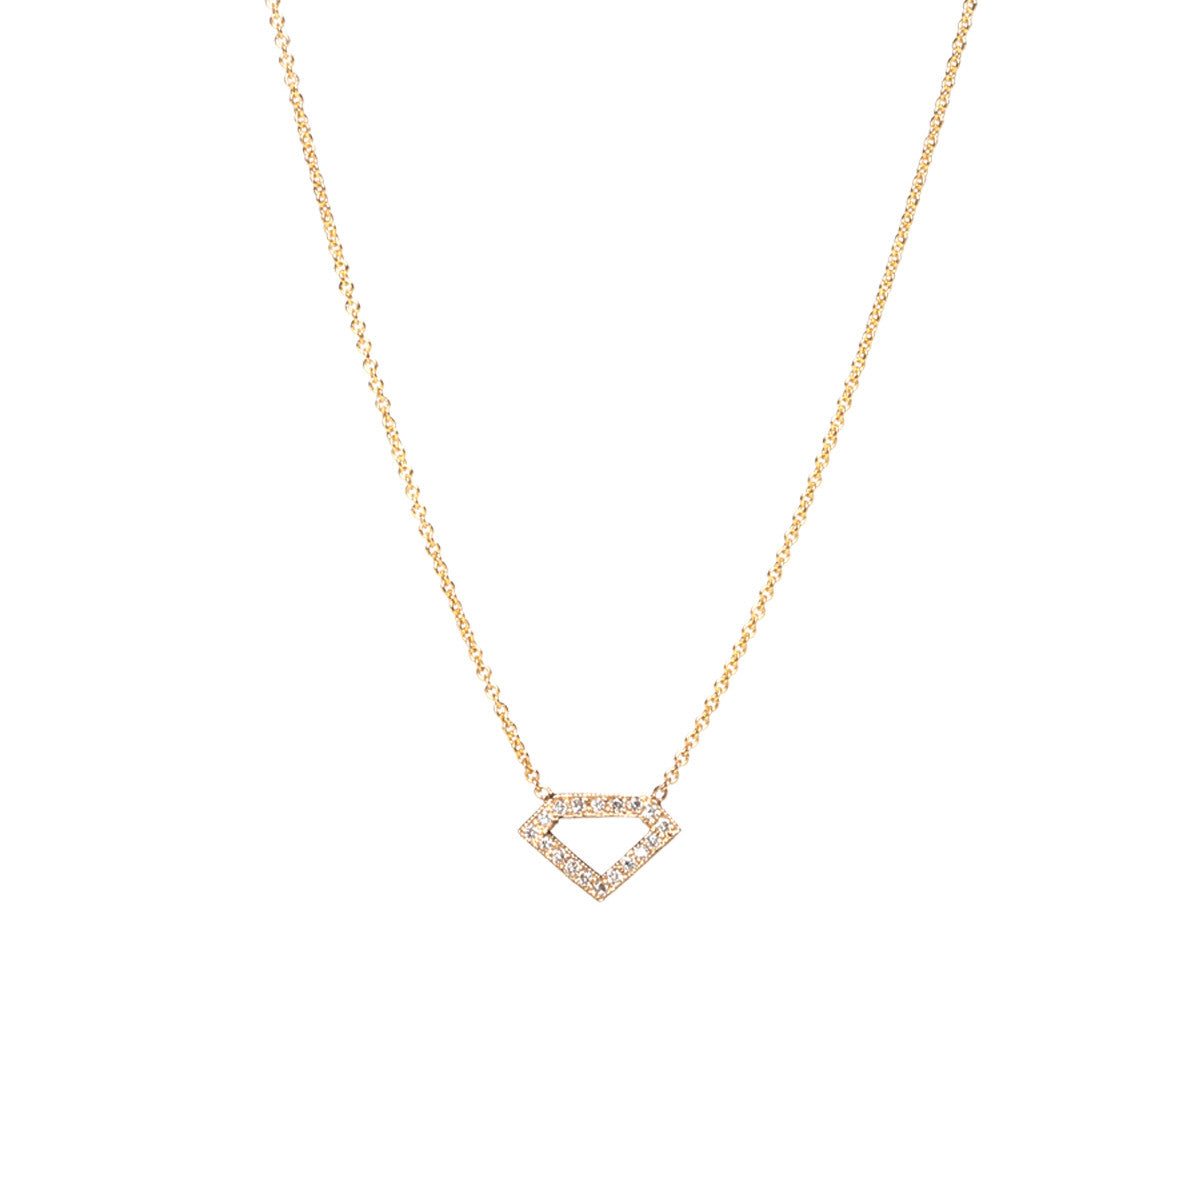 14k pave diamond outline necklace